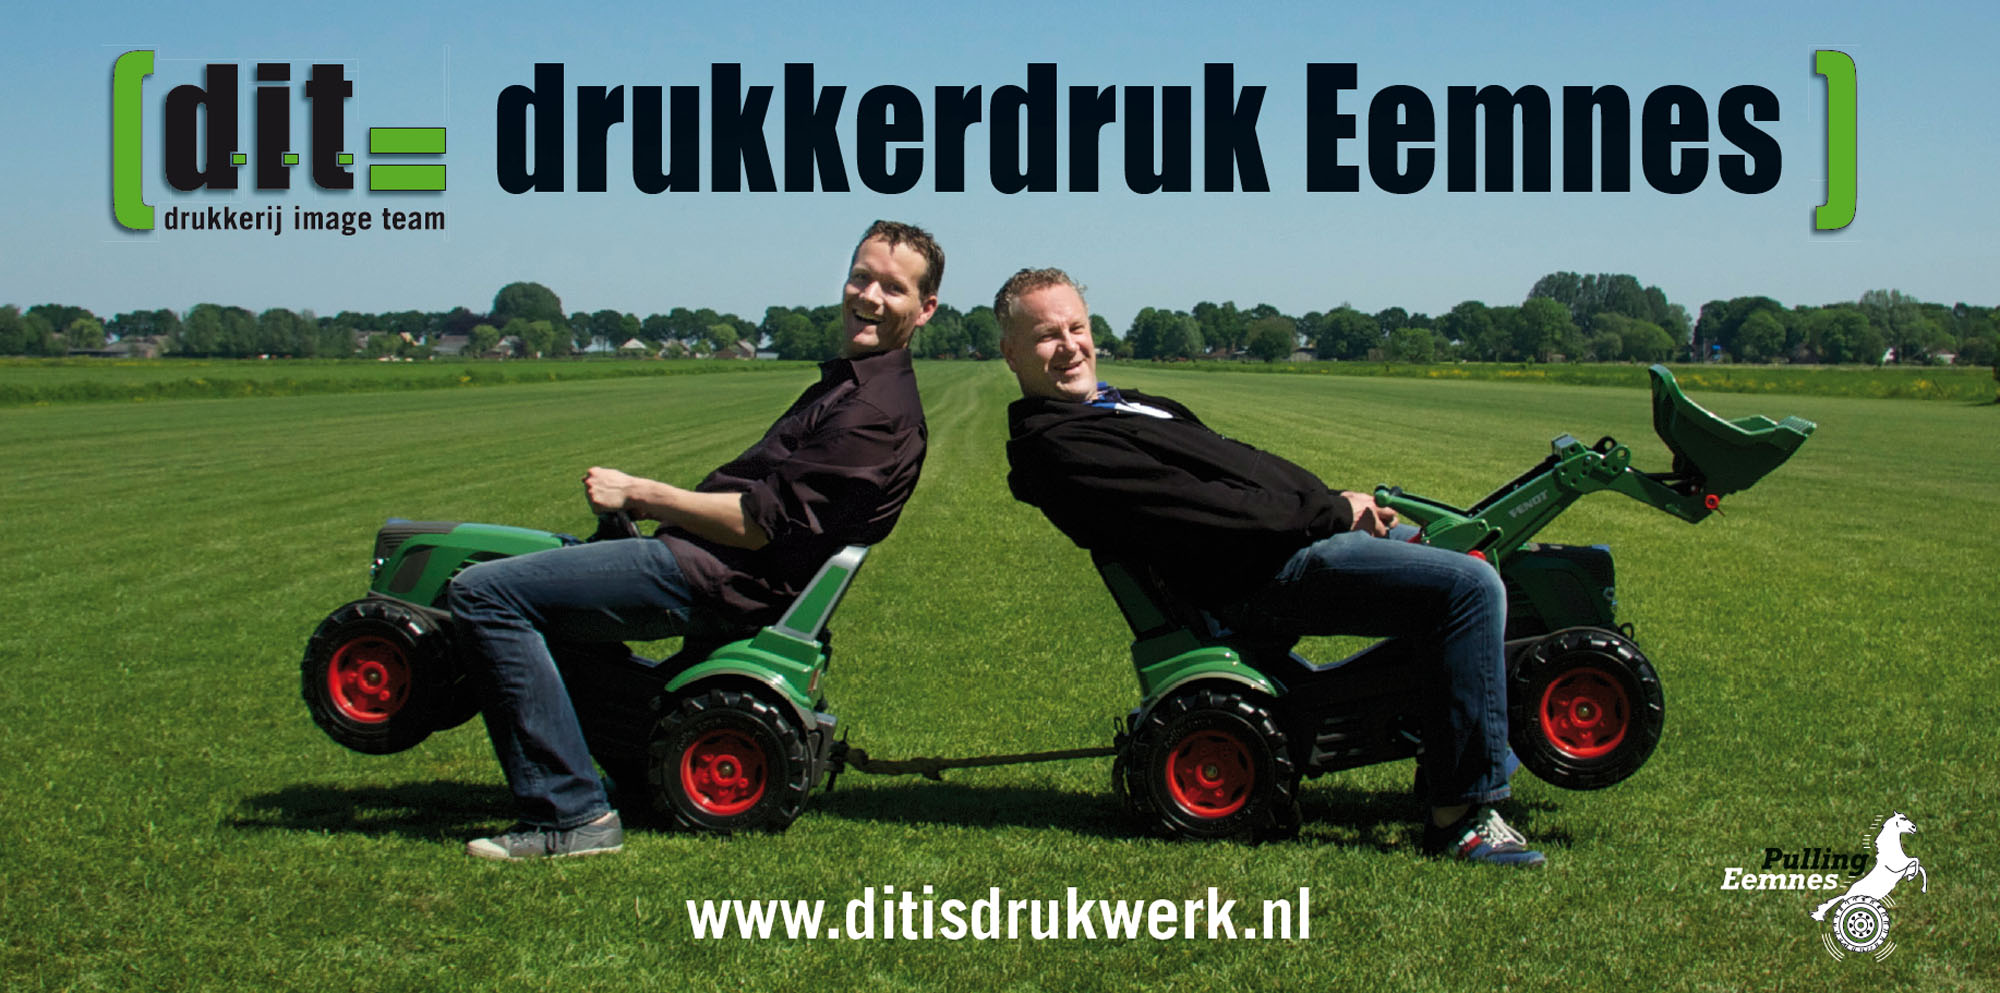 Advertentie Pulling Eemnes